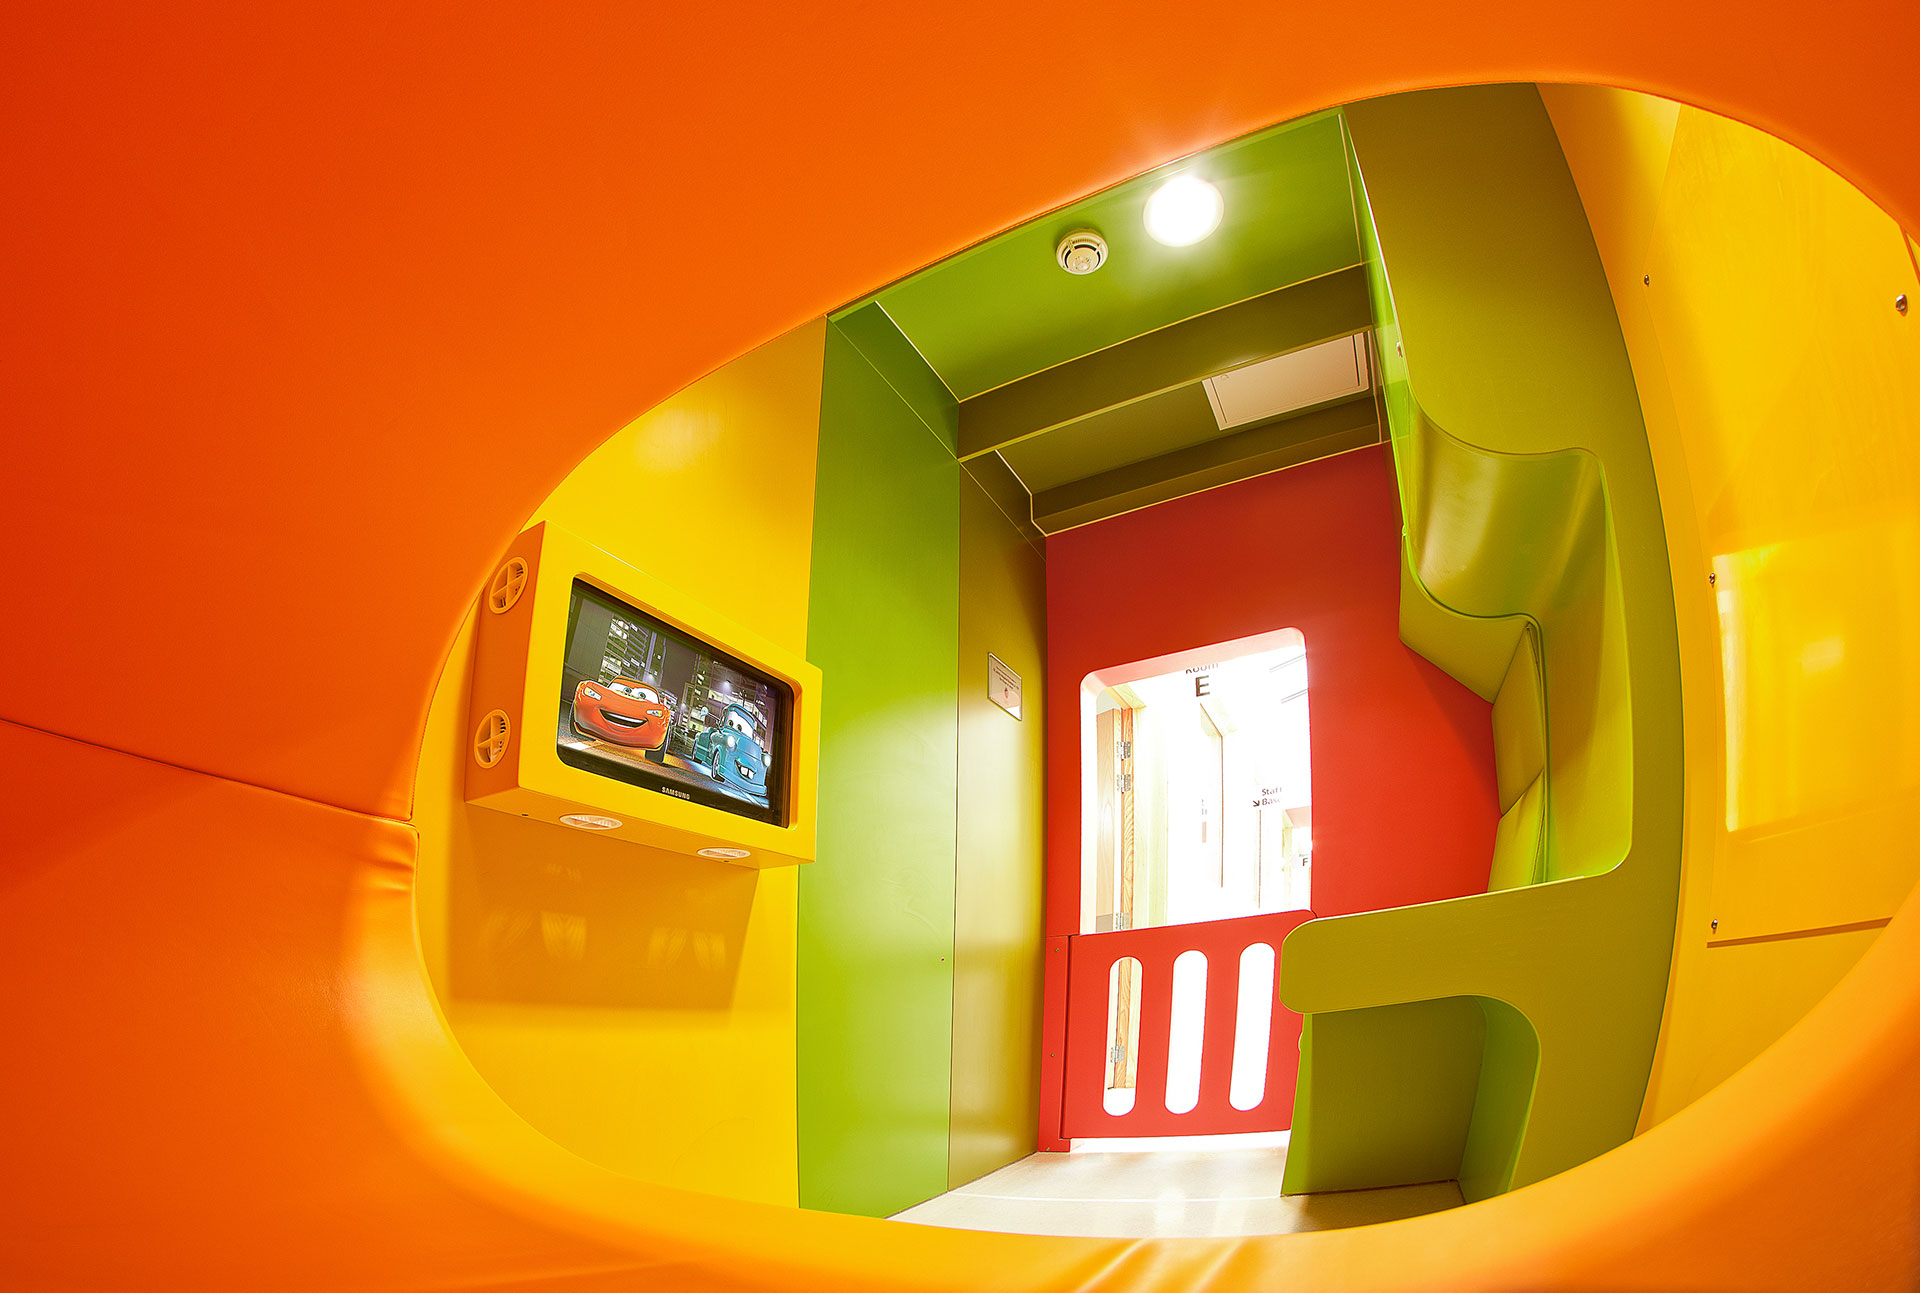 Interactive hospital play room for children at NHS neonatal unit